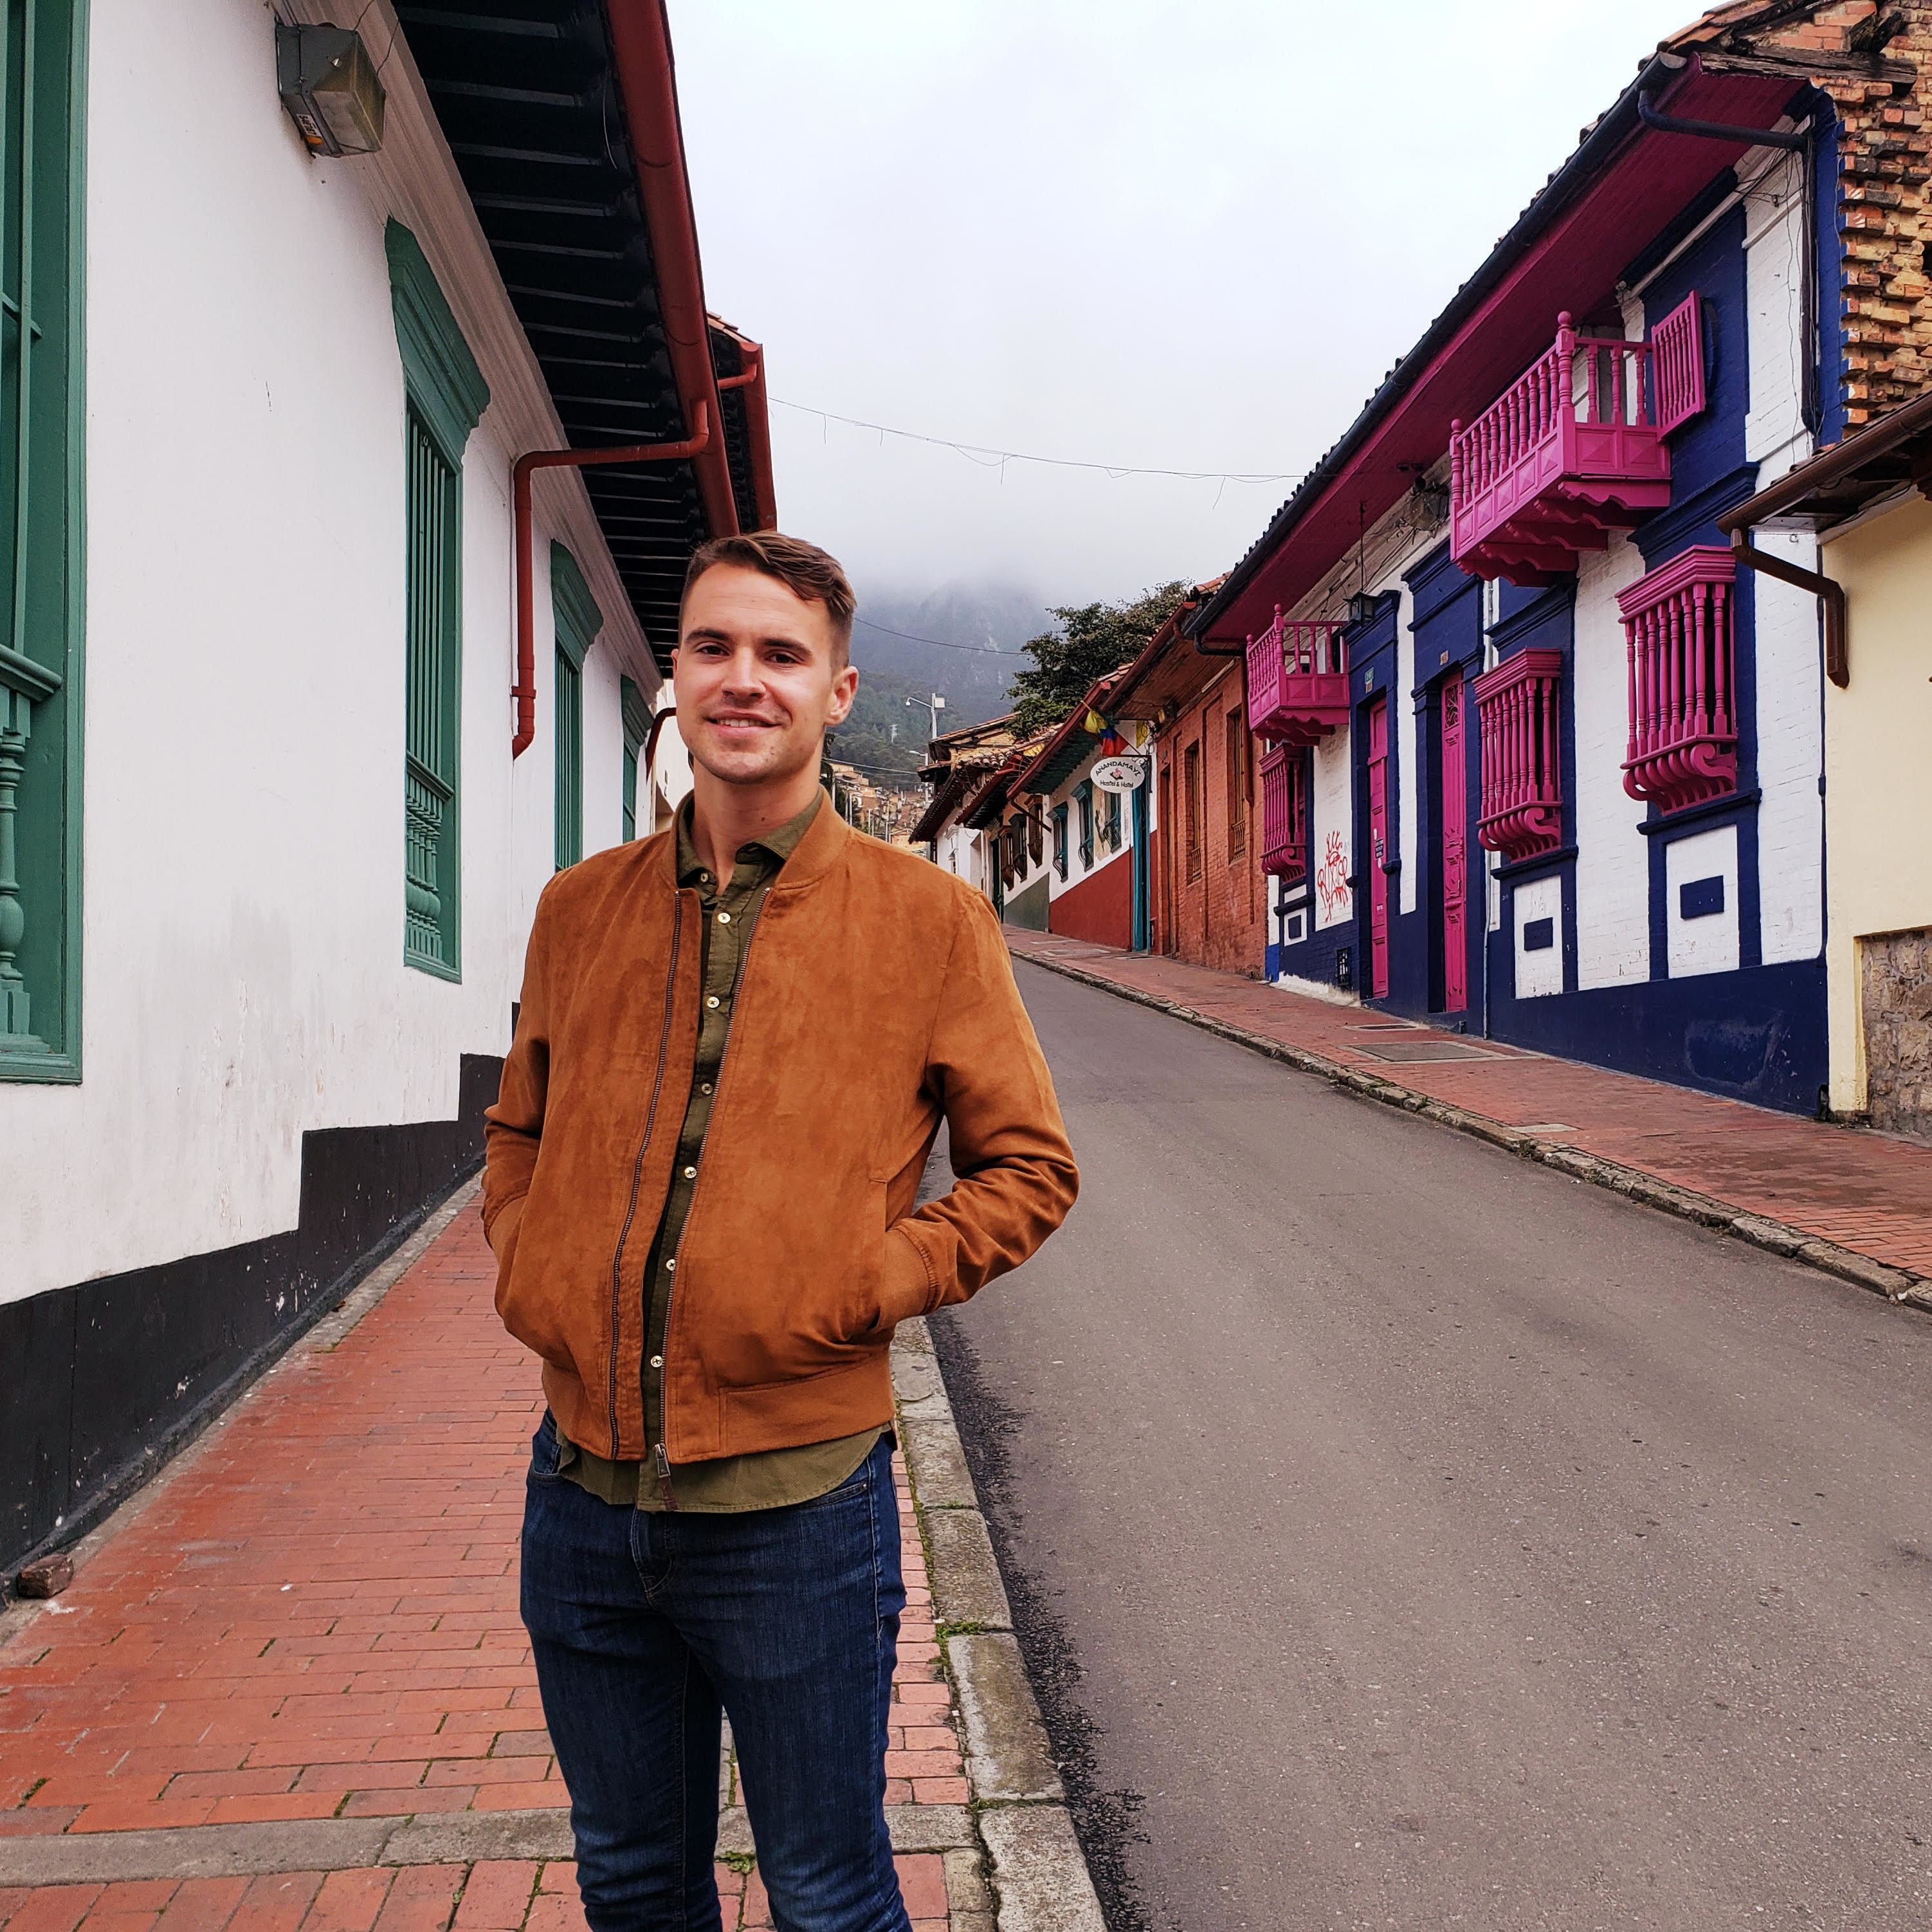 Sam Riddell in front of a row of houses in Colombia